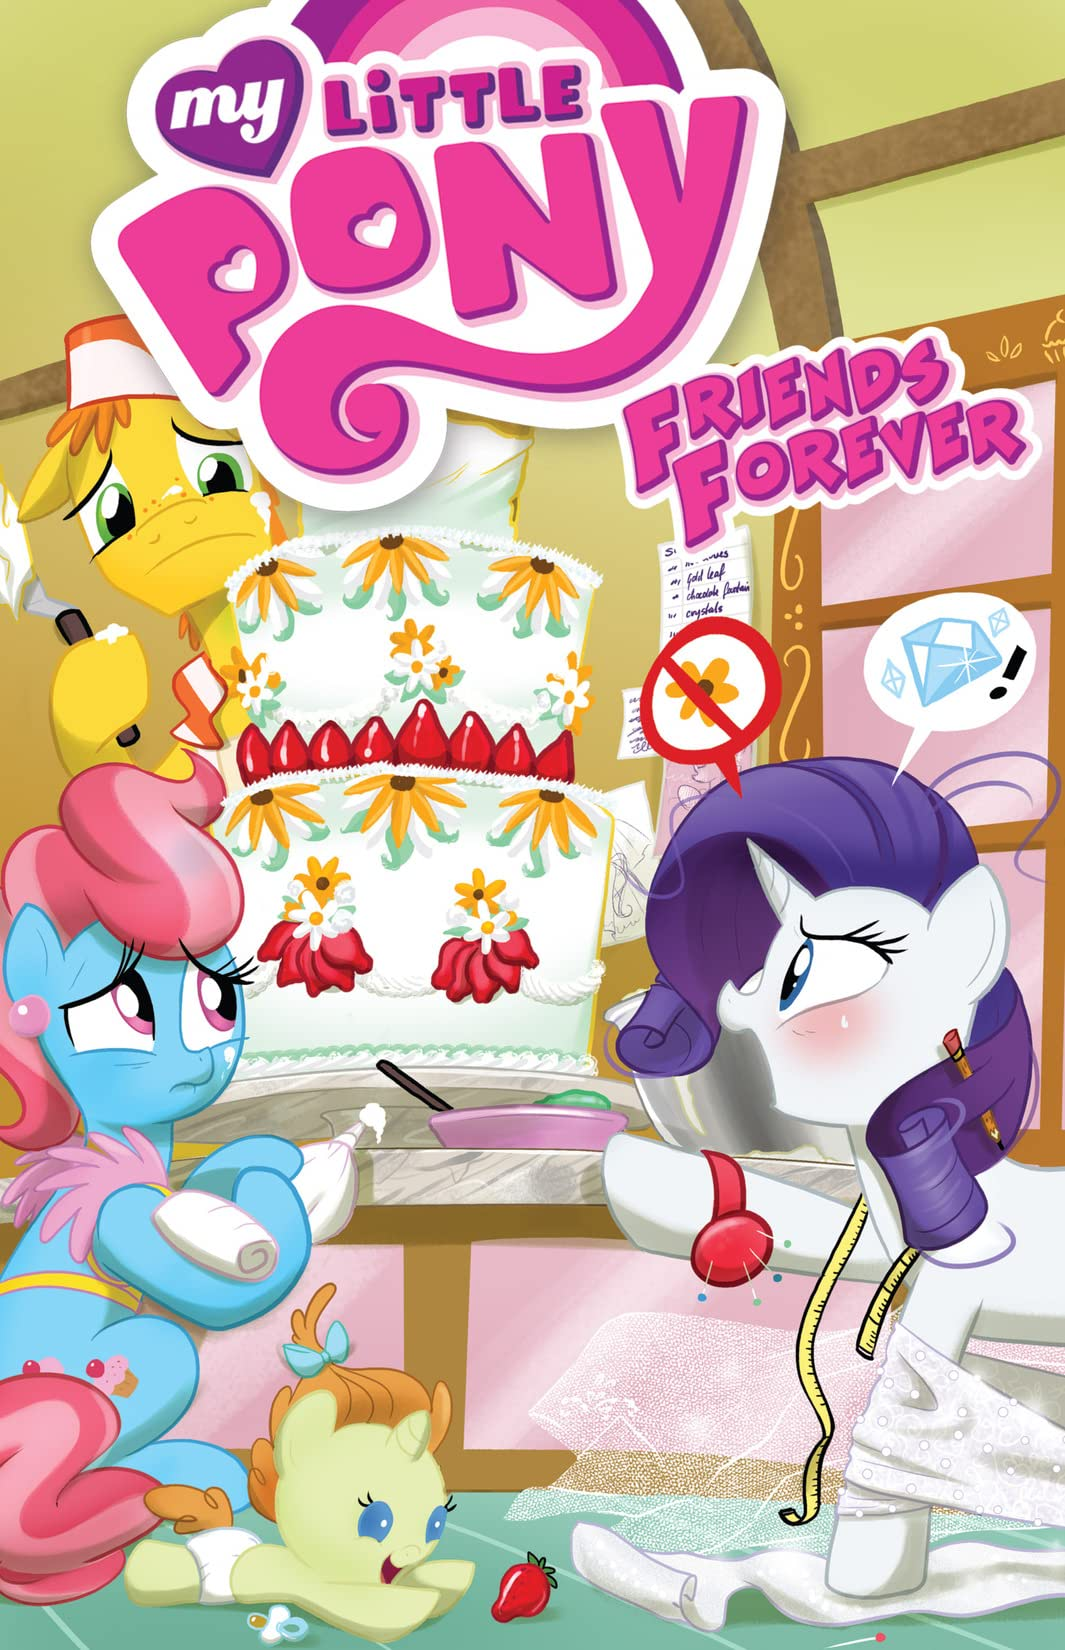 My Little Pony: Friends Forever Vol. 5